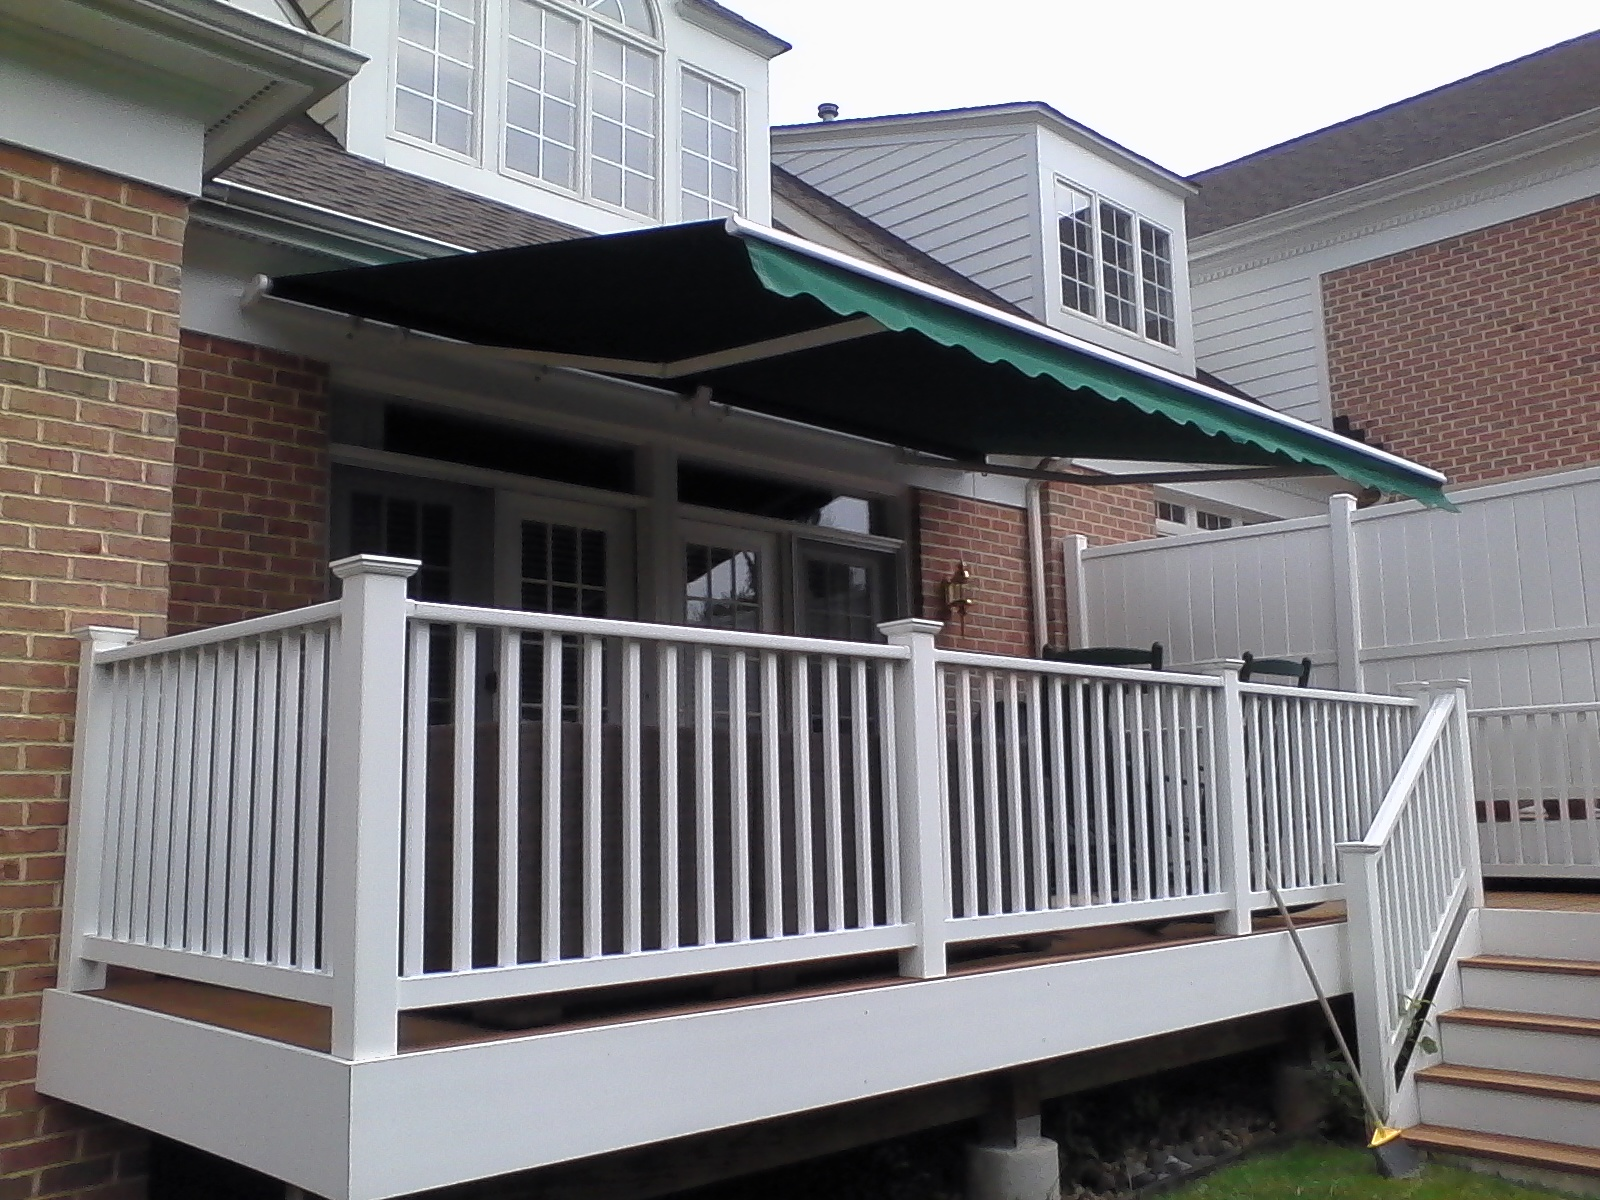 Retractable-Deck-Awning-Baltimore